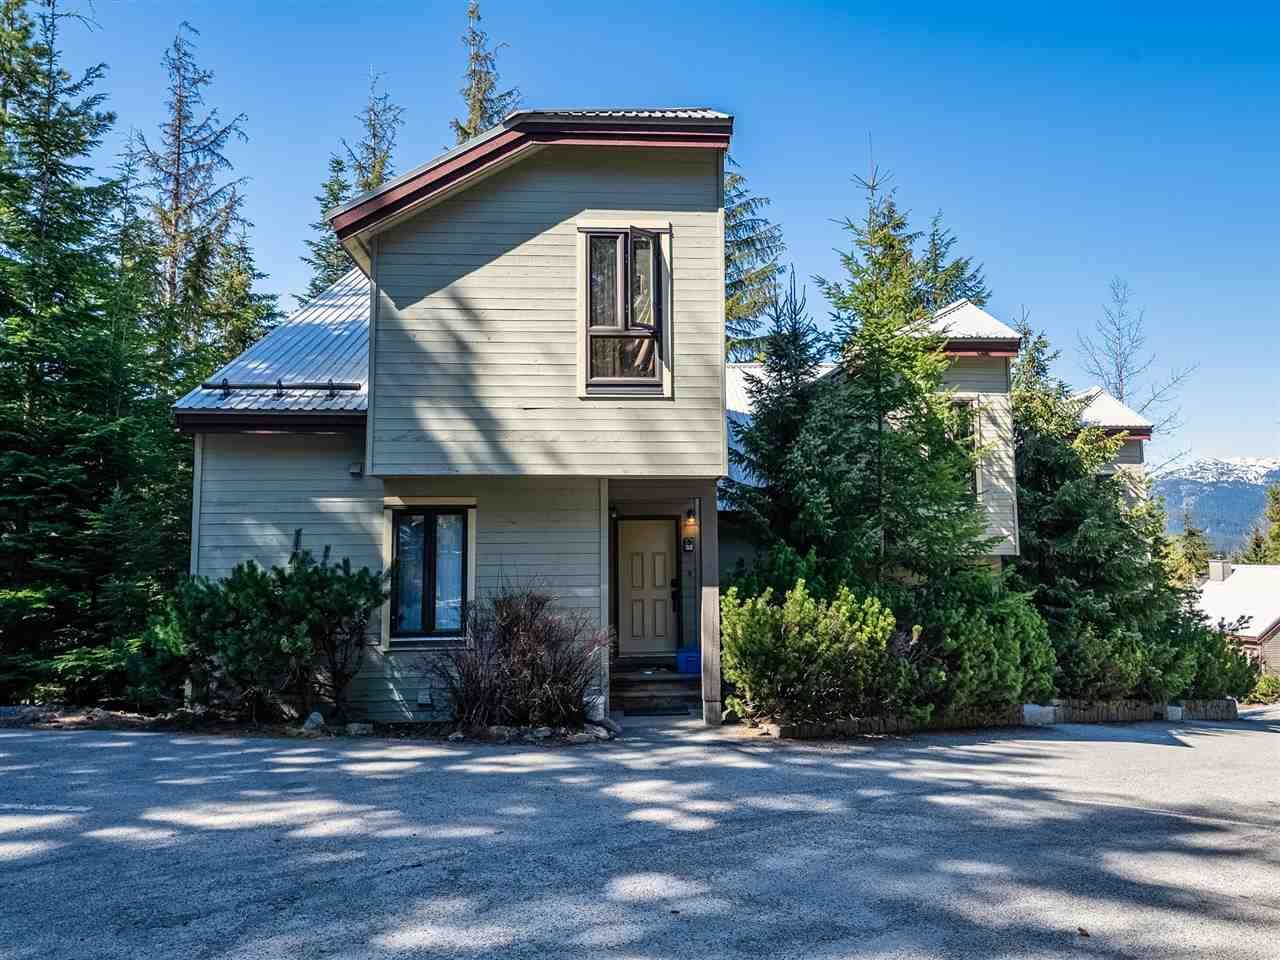 Main Photo: 32 6125 EAGLE DRIVE in Whistler: Whistler Cay Heights Townhouse for sale : MLS®# R2570202